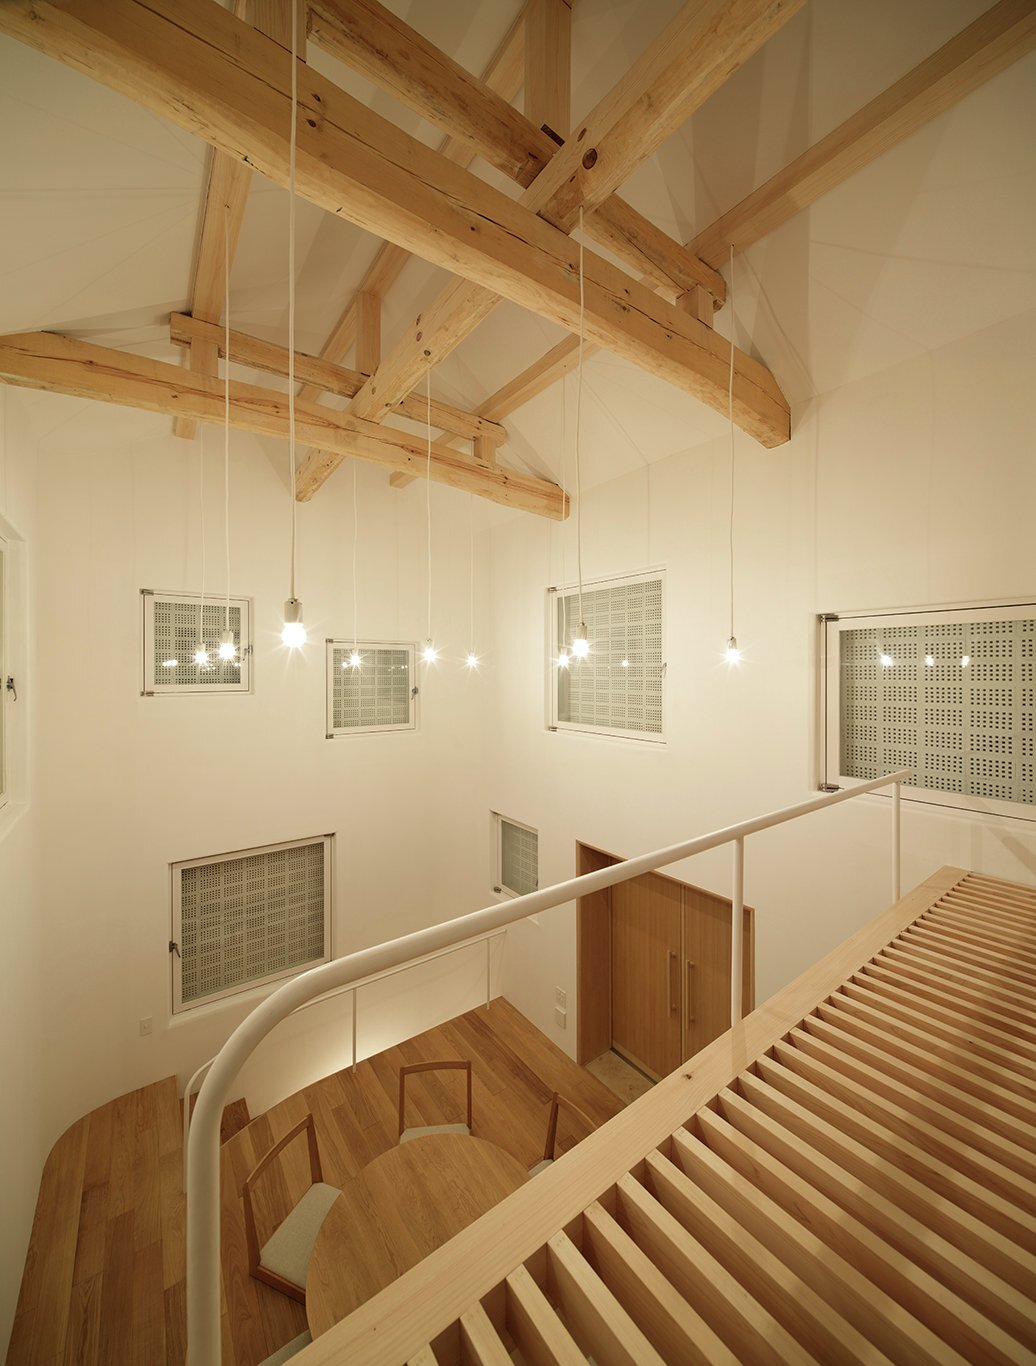 RebirthHouse - Ryo Matsui Architects - Japan - Roof Structure - Humble Homes